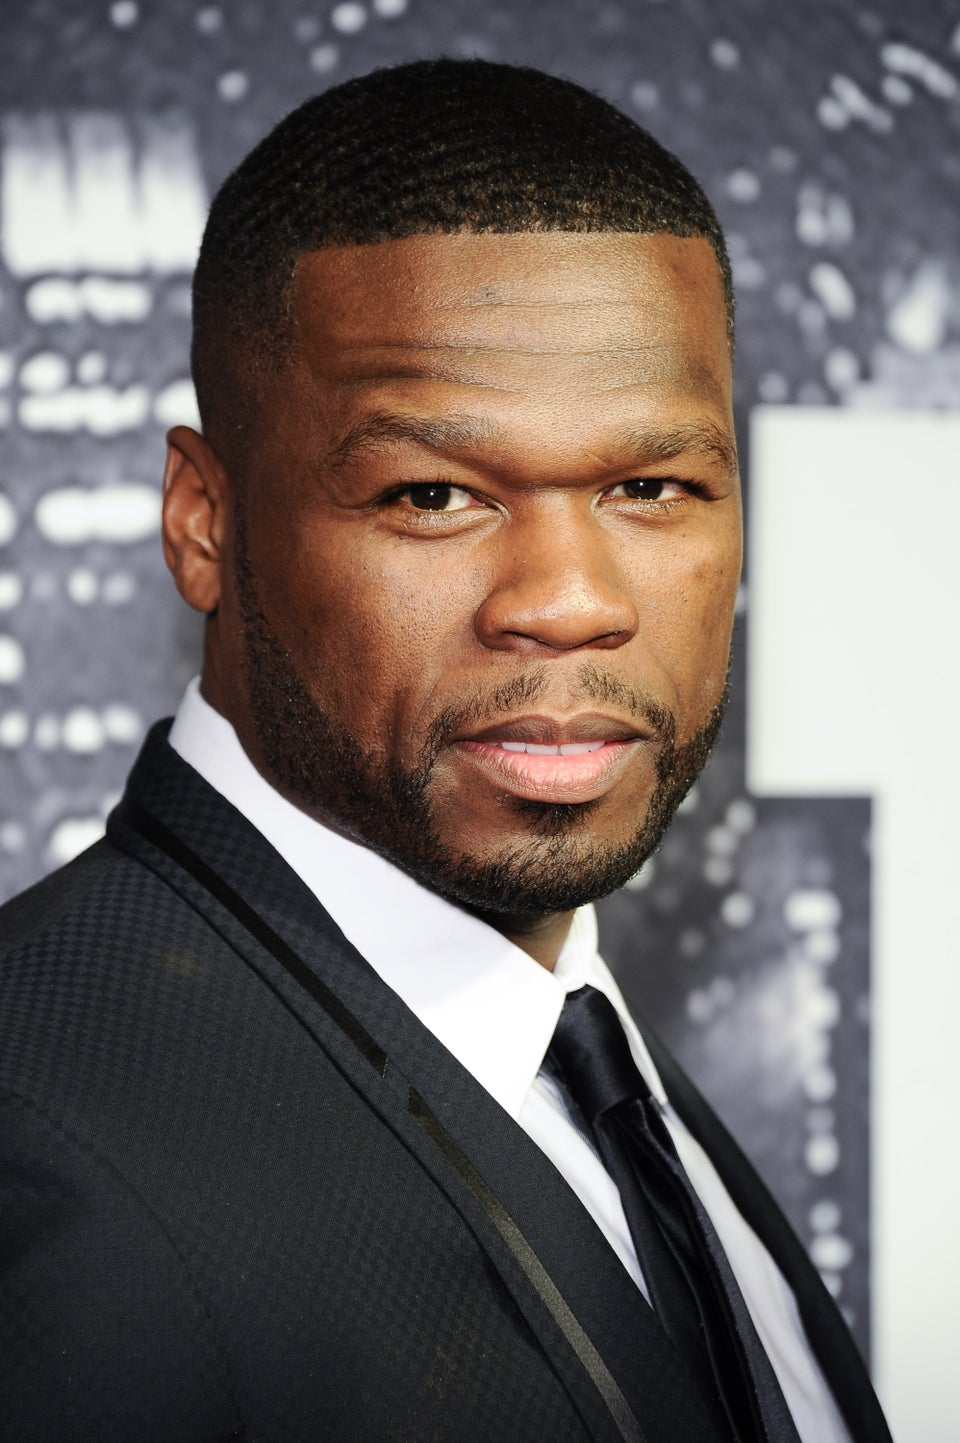 50 Cent Invites Woman On Stage After Punching Her In The Chest